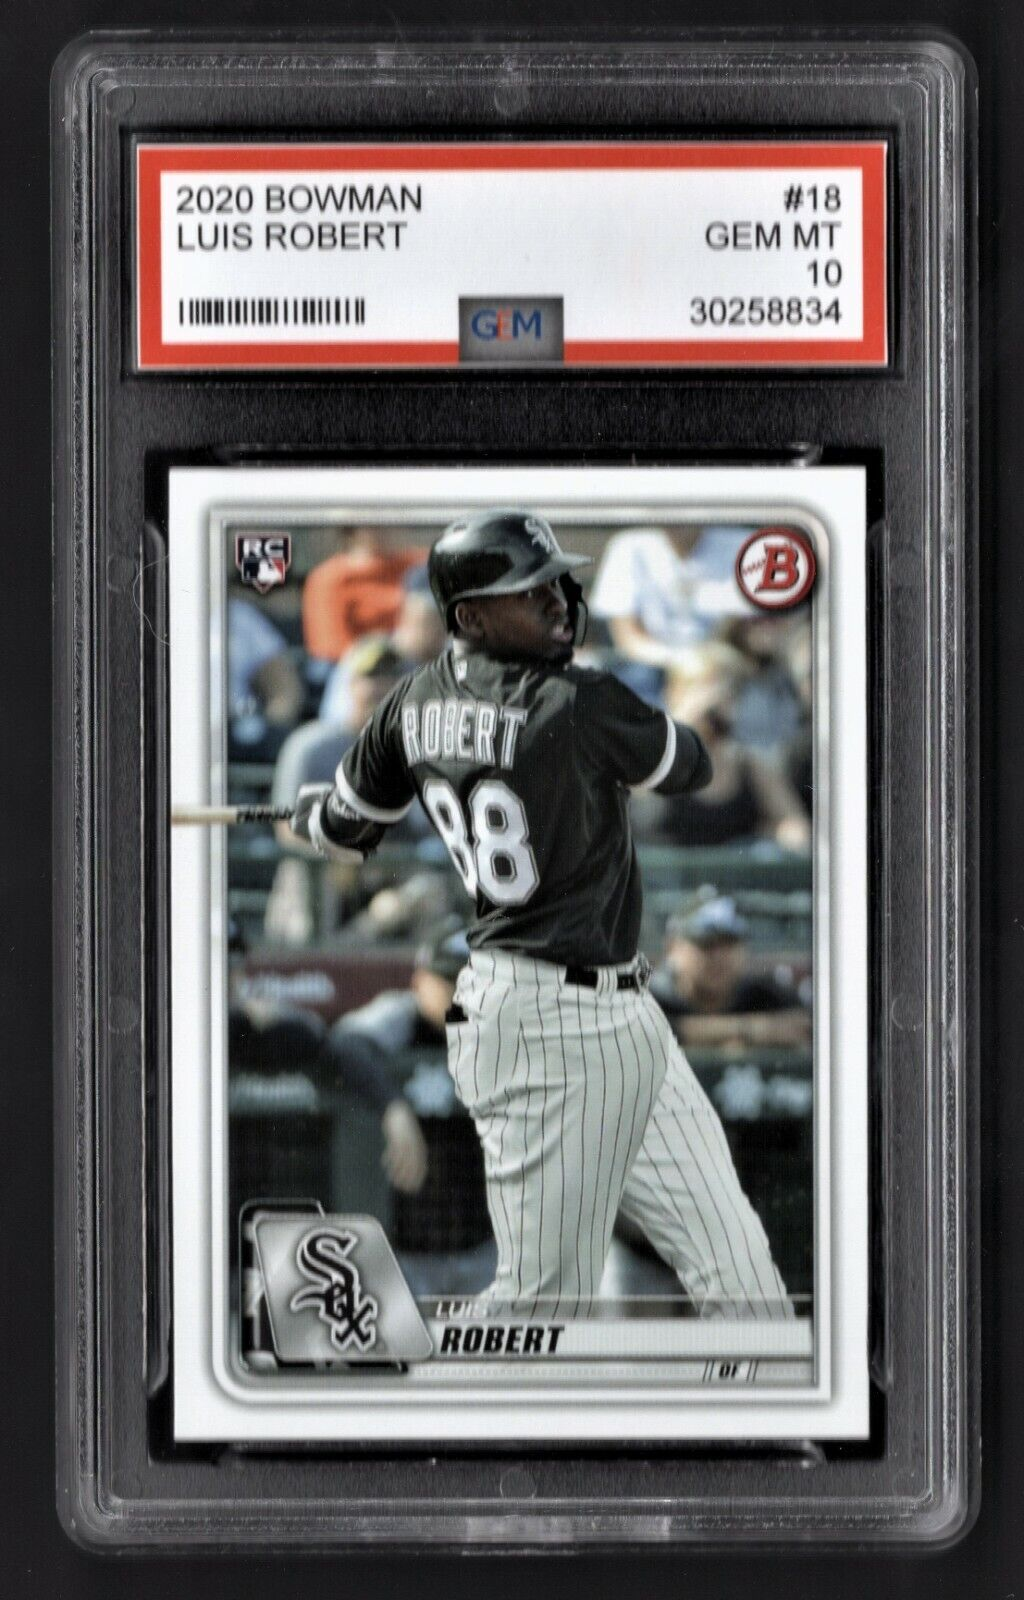 2020/20 Luis Robert Topps Bowman Draft Rookie Graded 10 Chicago White Sox Card